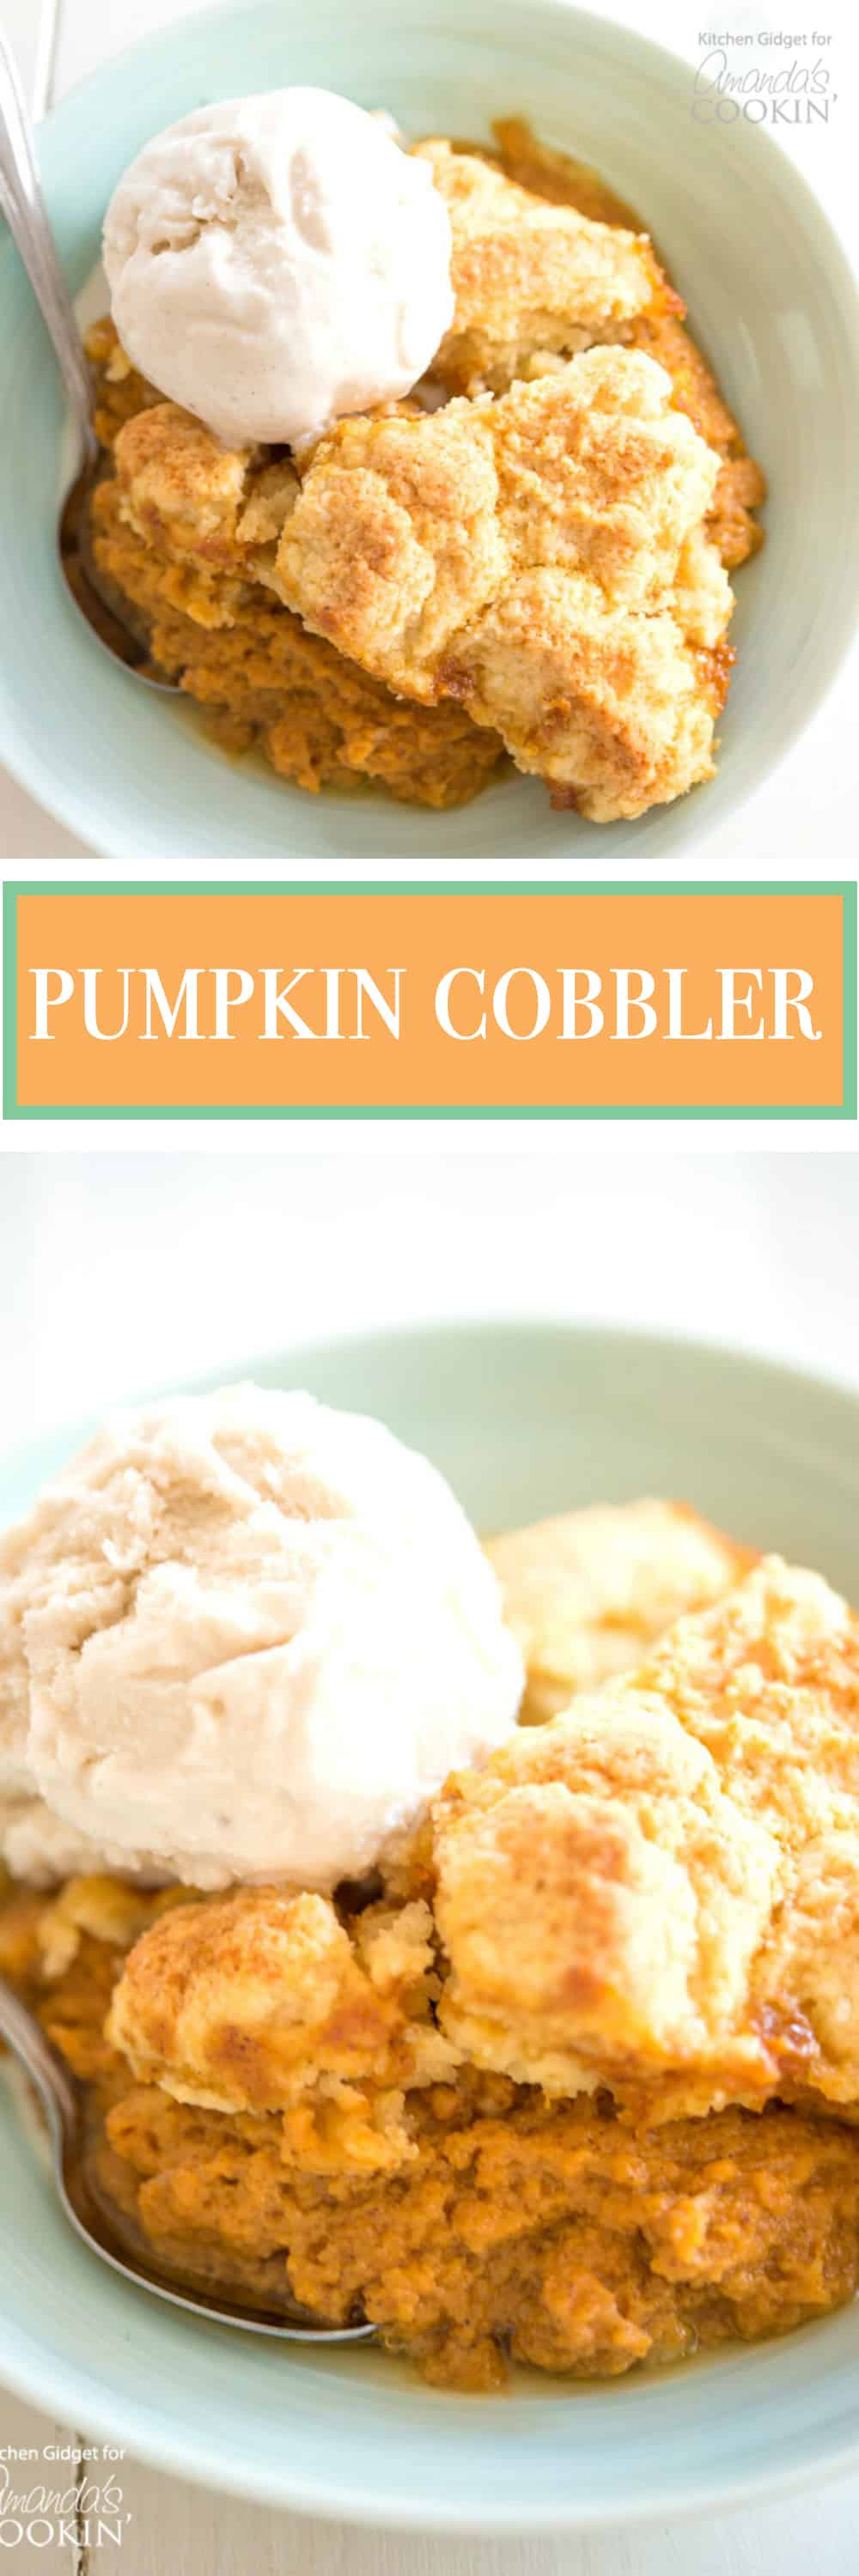 Pumpkin Cobbler: A pumpkin spice custard base with a flaky cobbler topping is the perfect no-fuss dessert for the fall season.